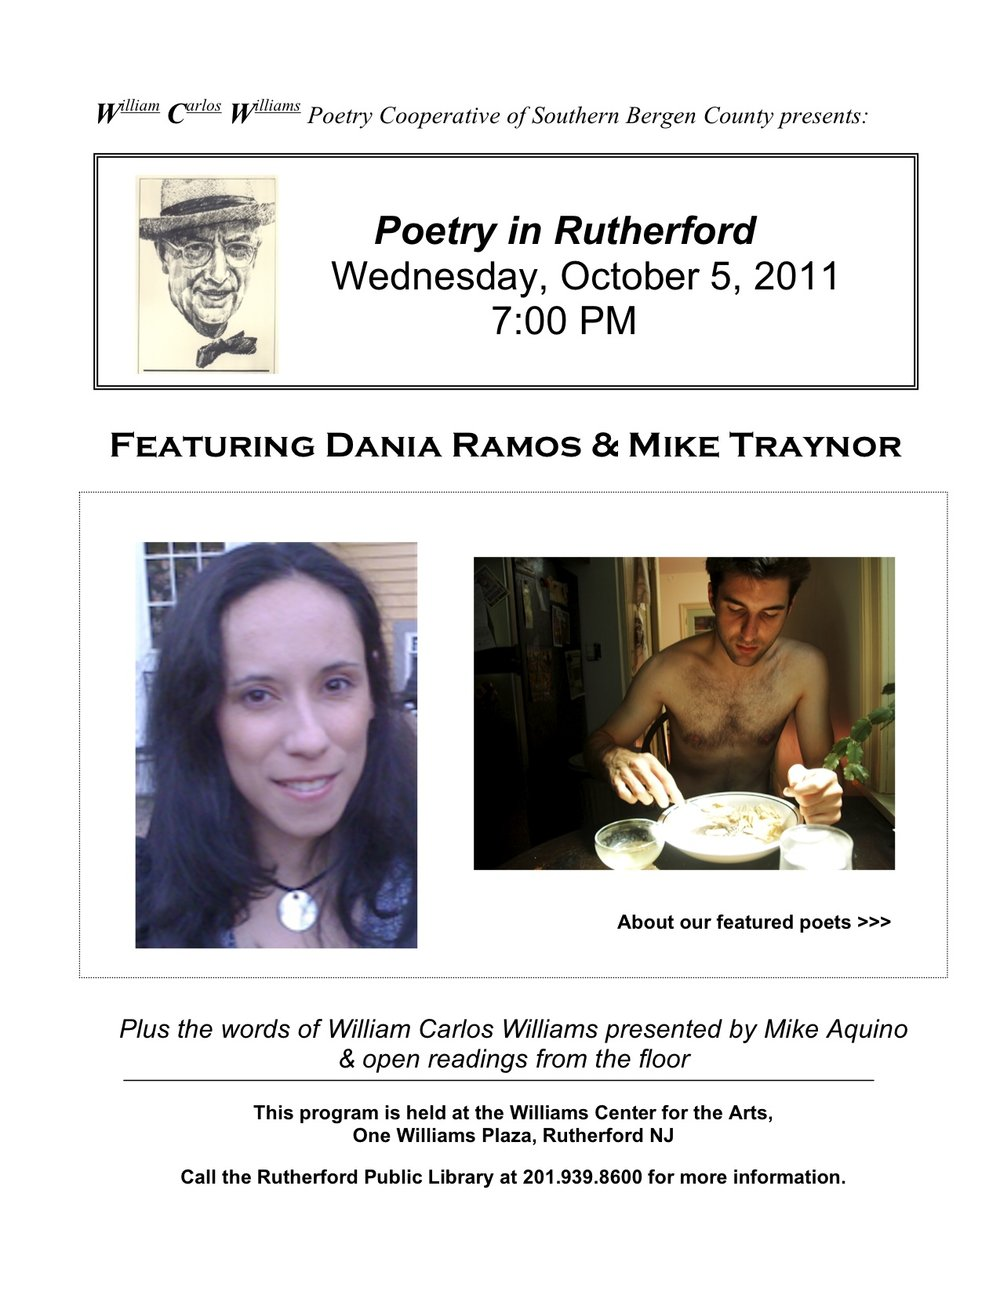 WCW Poetry  Cooperative Reading October 5, 2011 [Flyer]